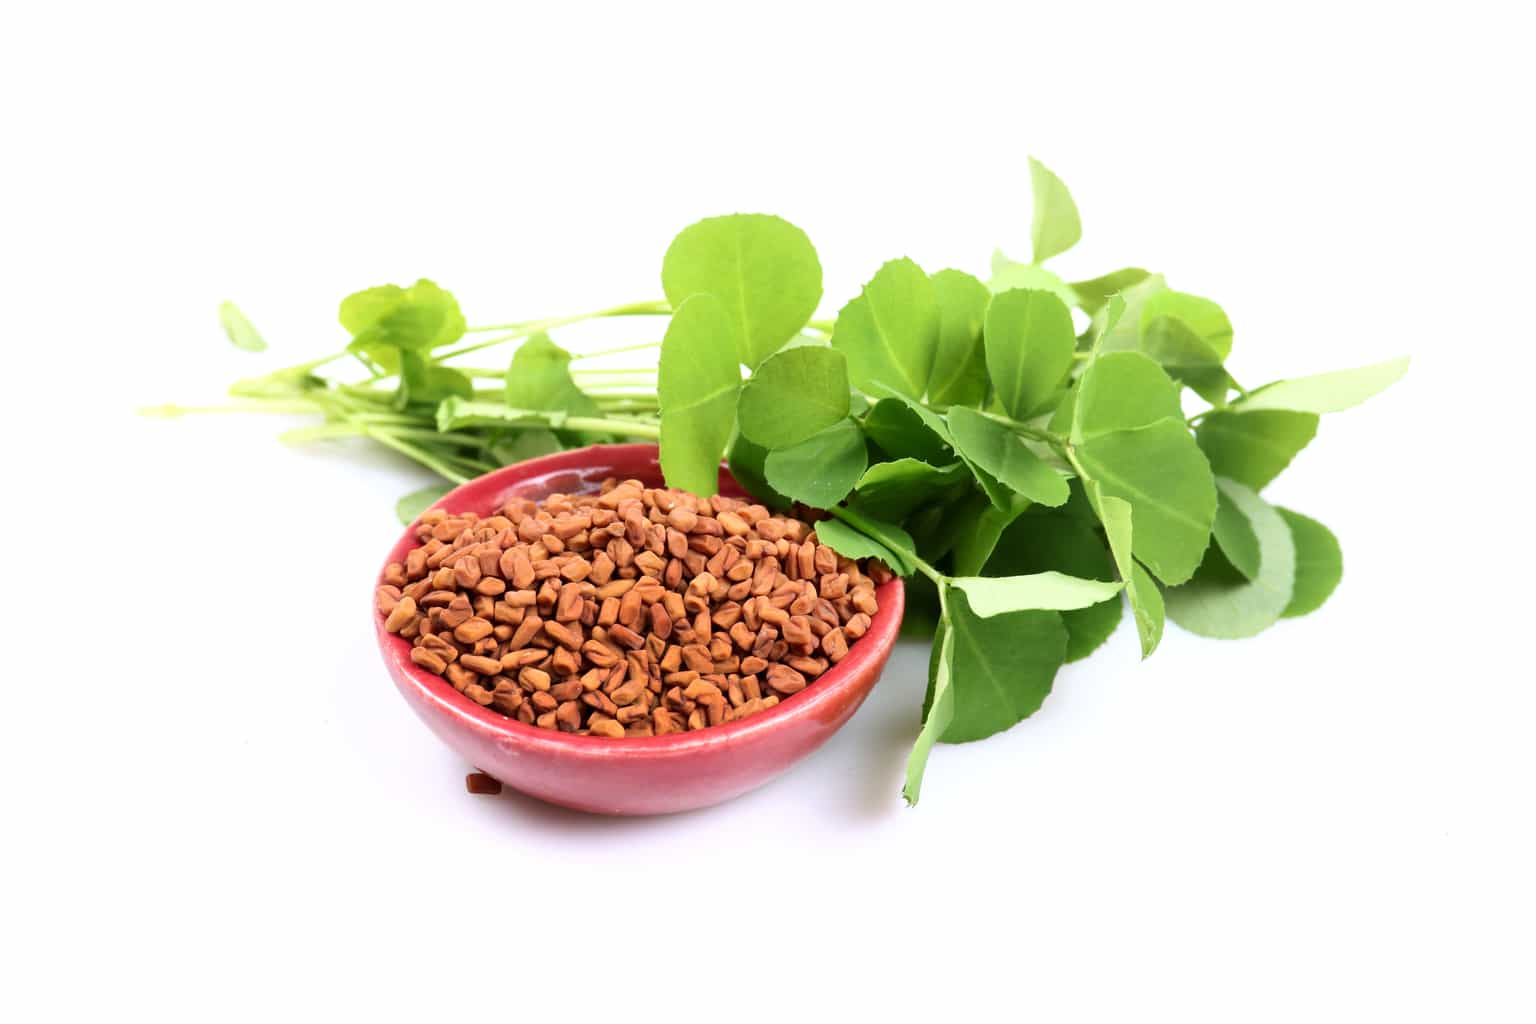 Do fenugreek supplements help raise testosterone?